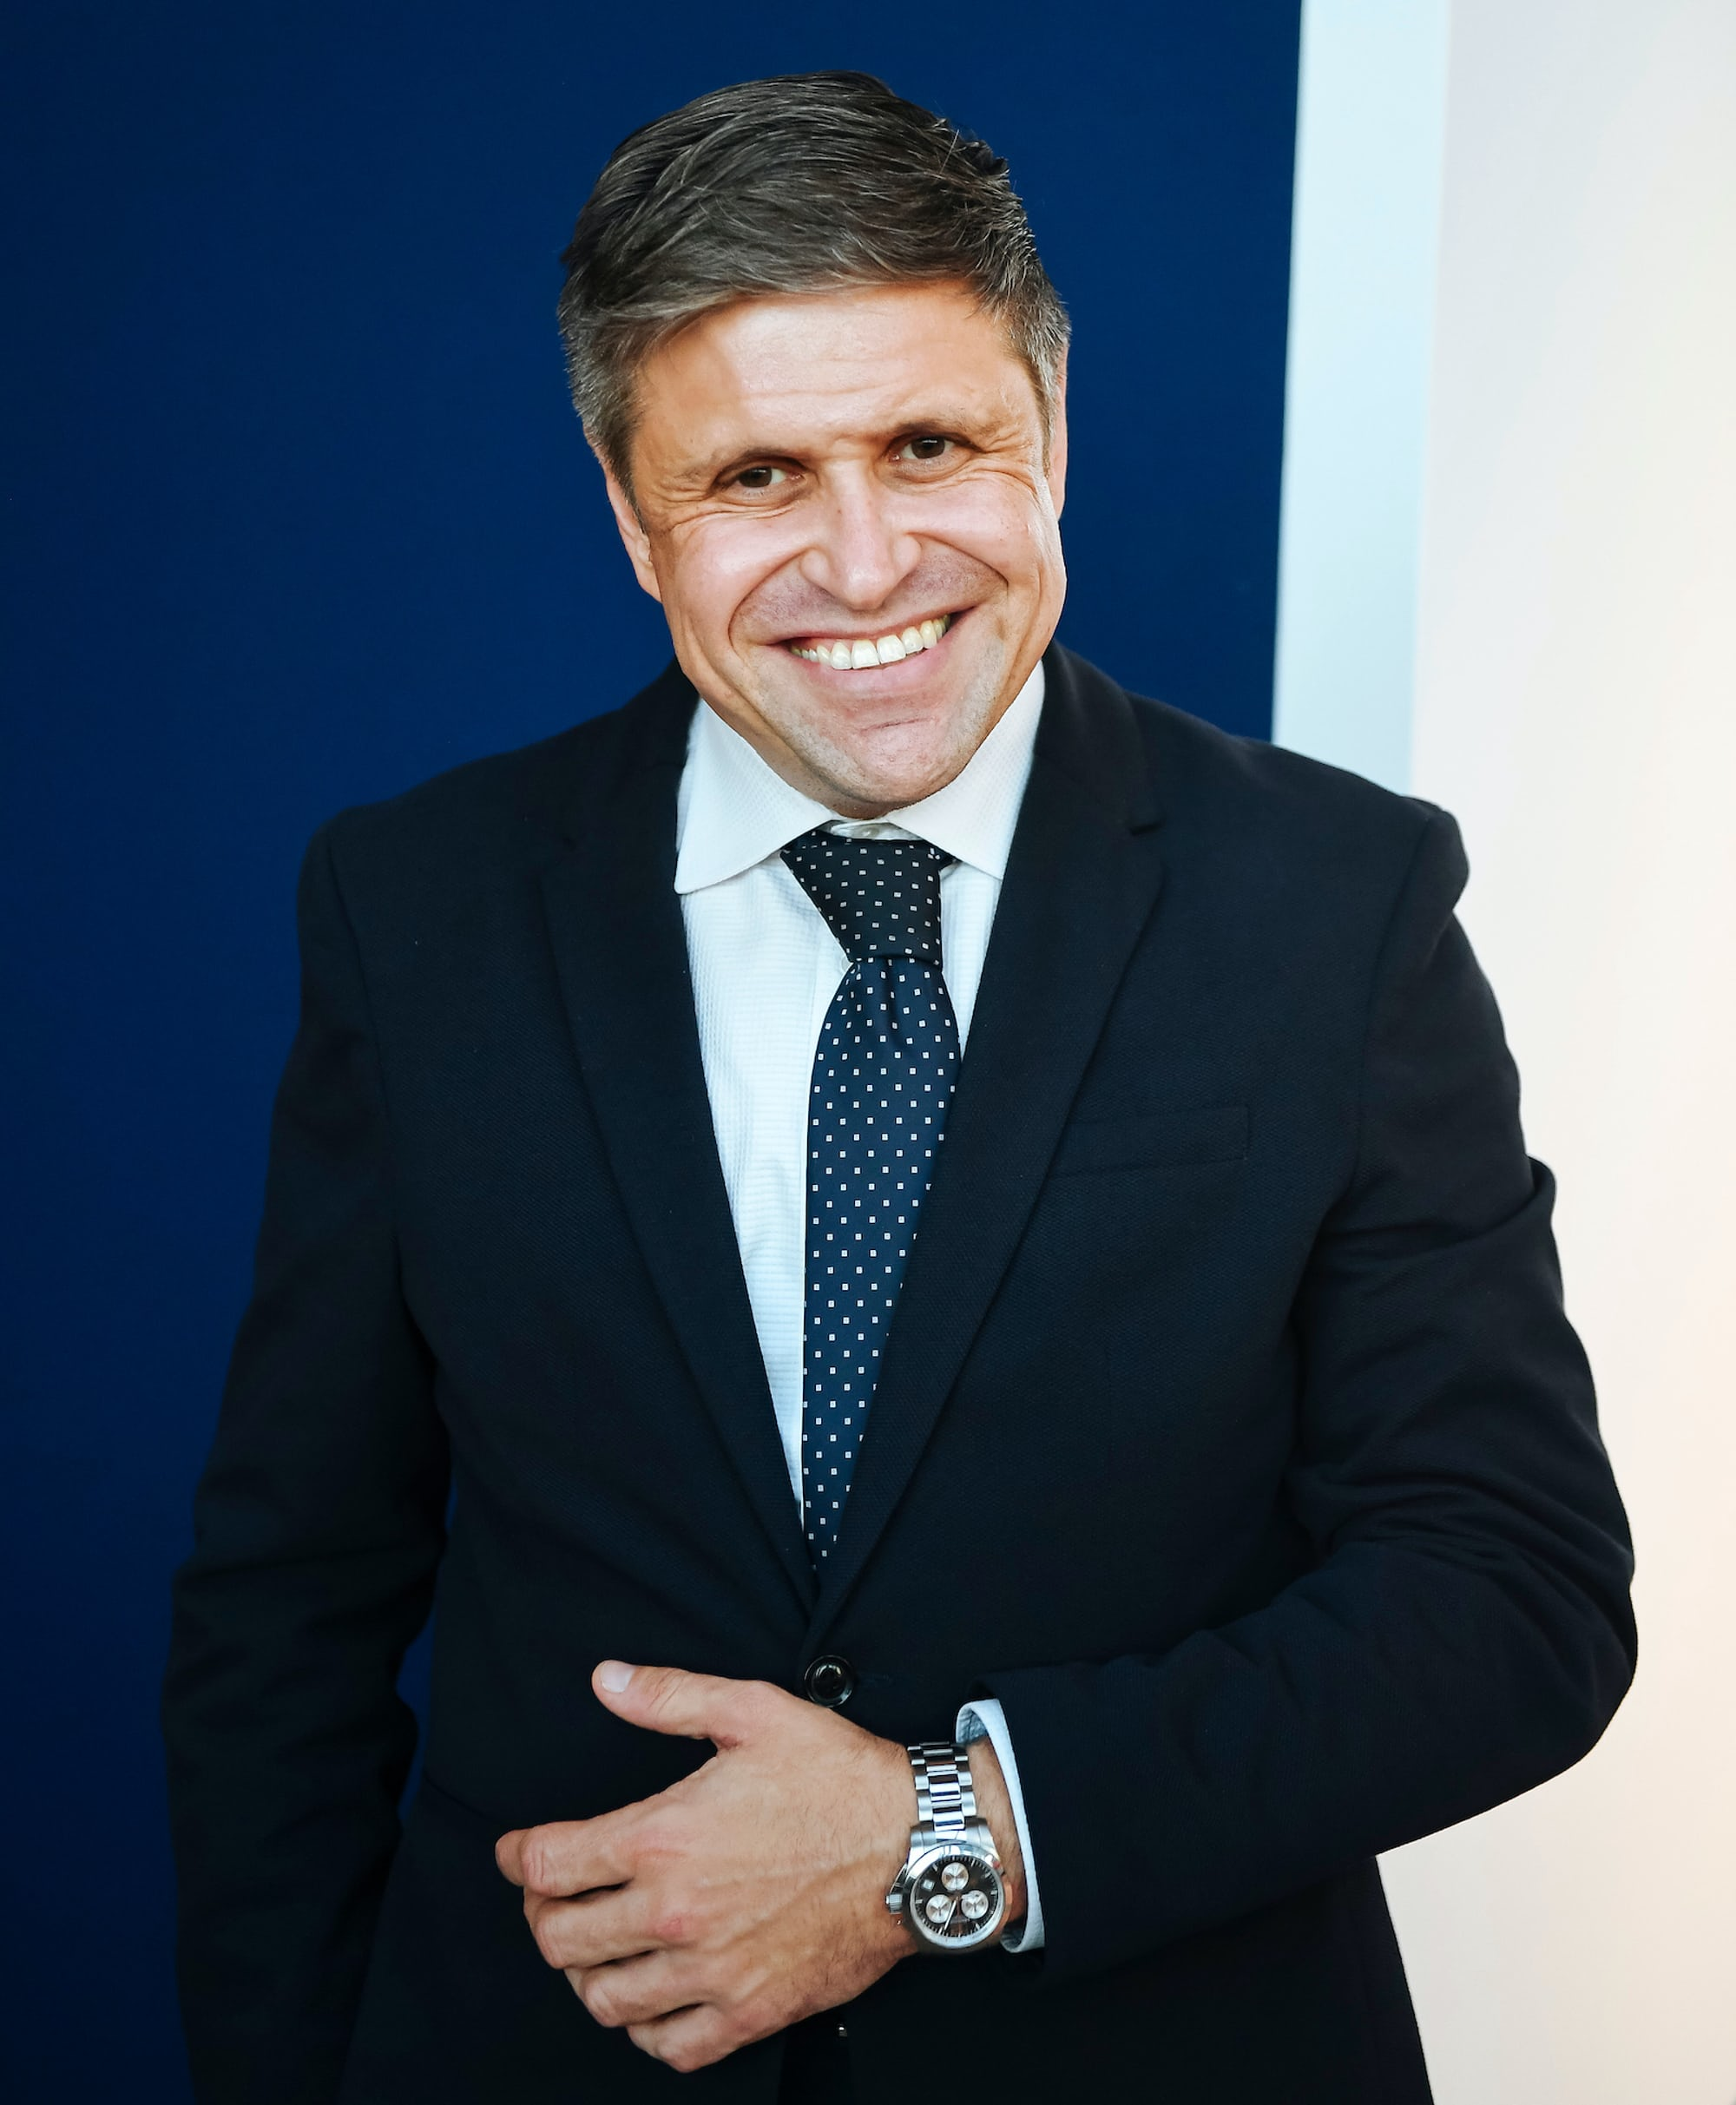 Juan Carlos Capelli of Longines Interview: Longines VP Juan-Carlos Capelli On Why His Company Continues To Invest In Quartz Interview: Longines VP Juan-Carlos Capelli On Why His Company Continues To Invest In Quartz JCC profile photo 1